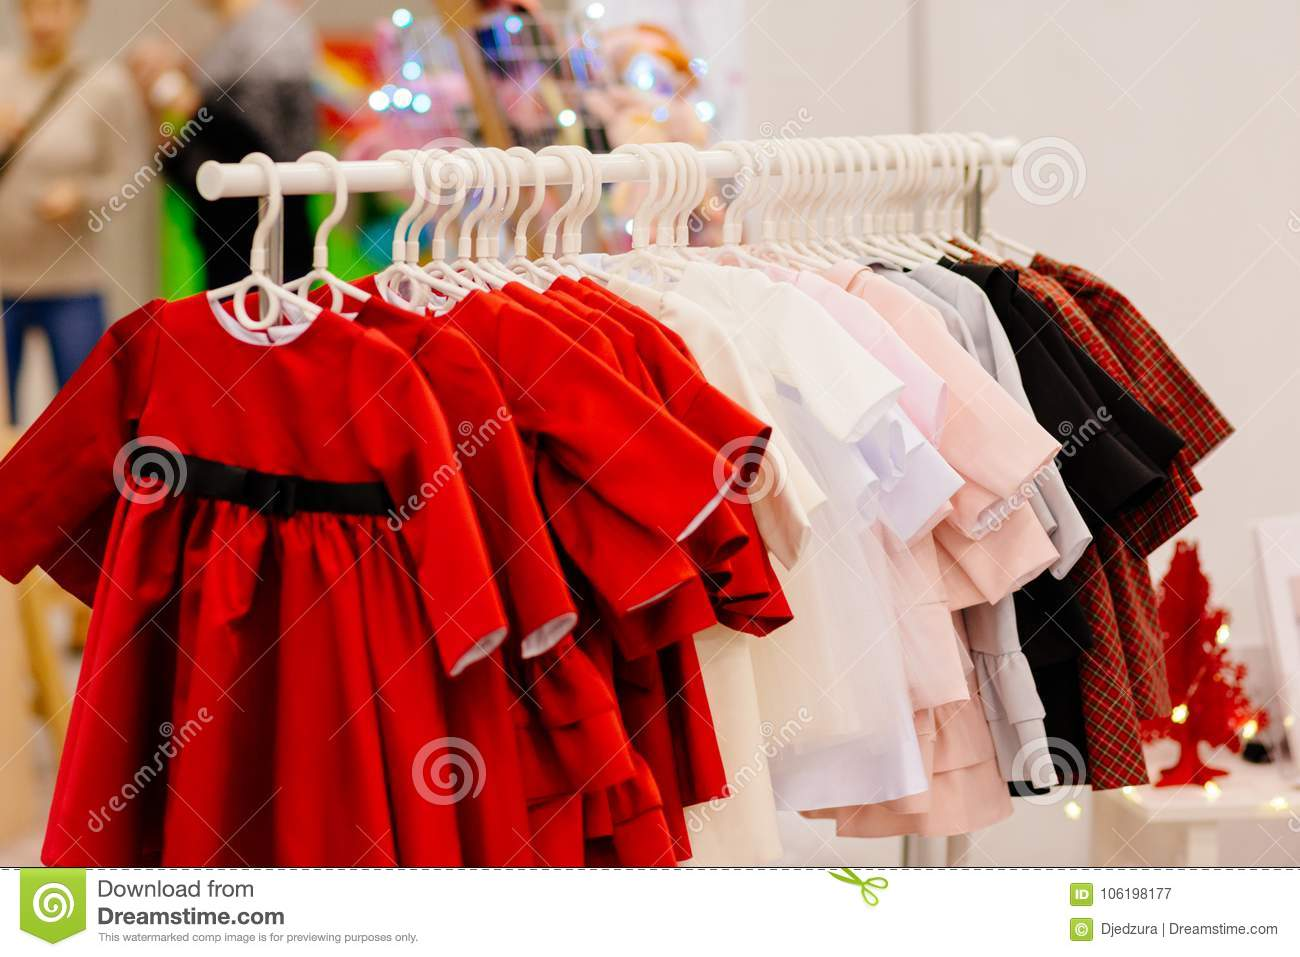 aed864011 Shop Hanger With New Girls Dresses In Fashion Store. Stock Image ...